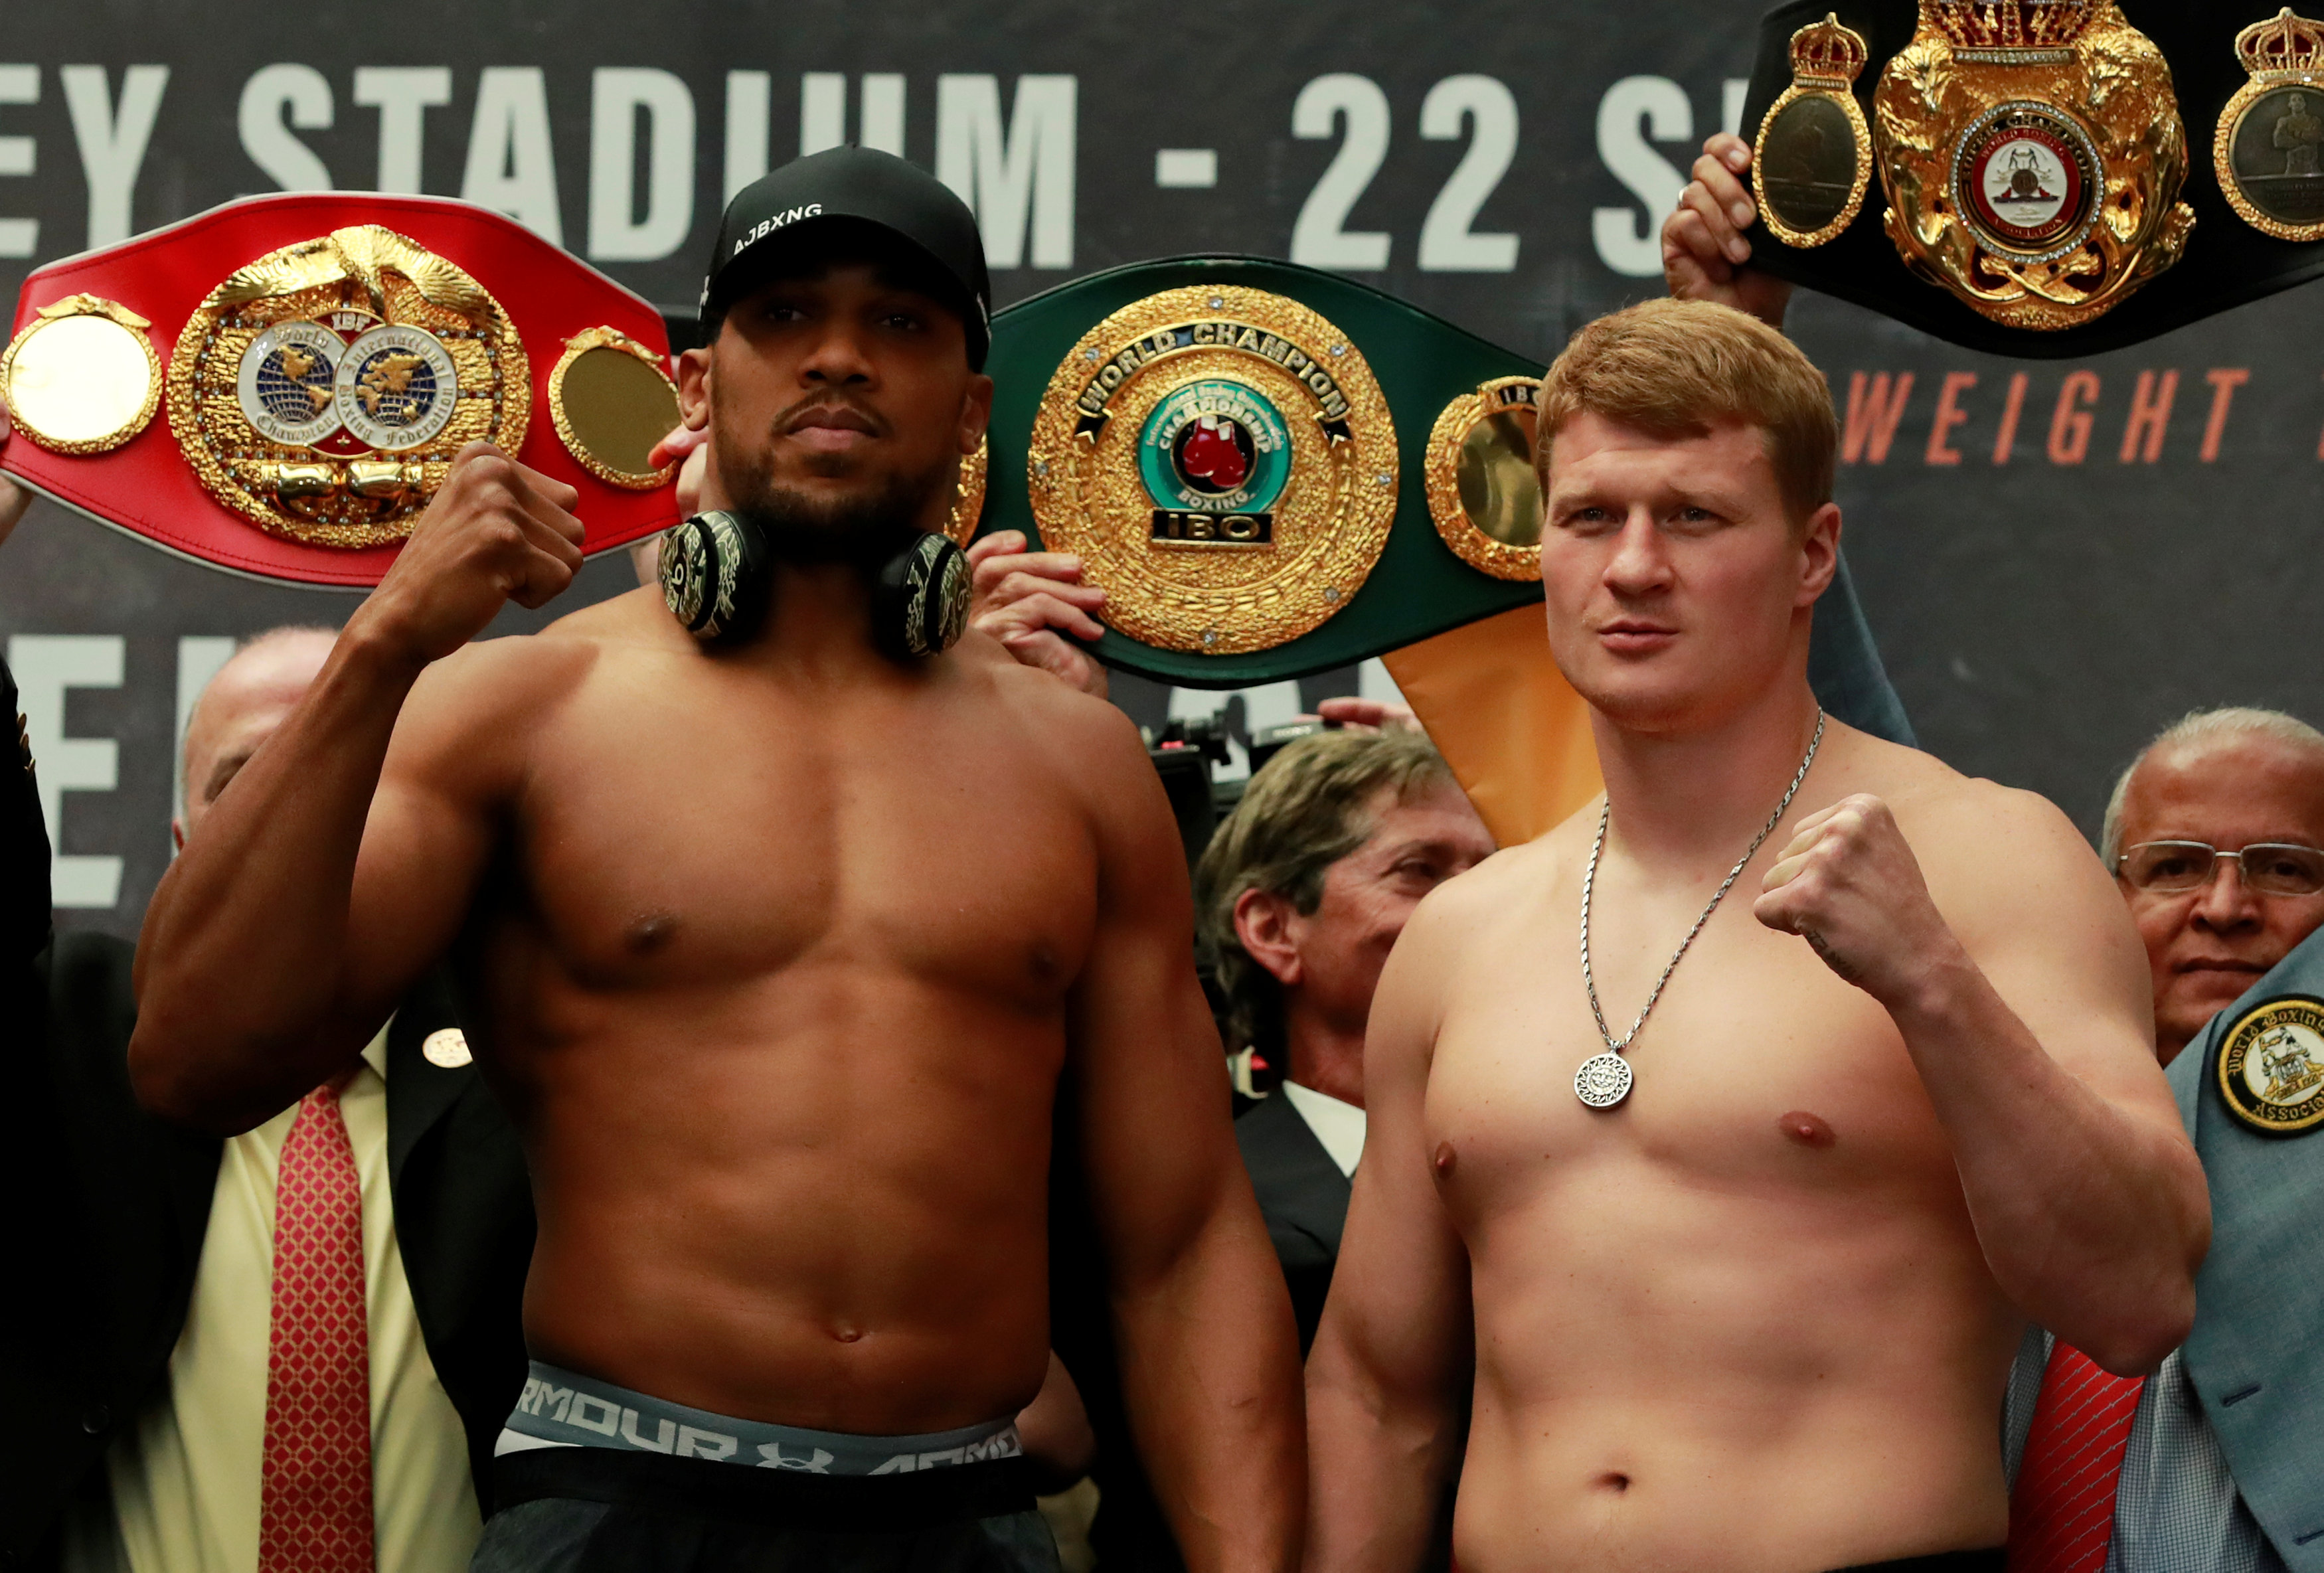 joshua adds weight for title fight against lighter povetkin enca